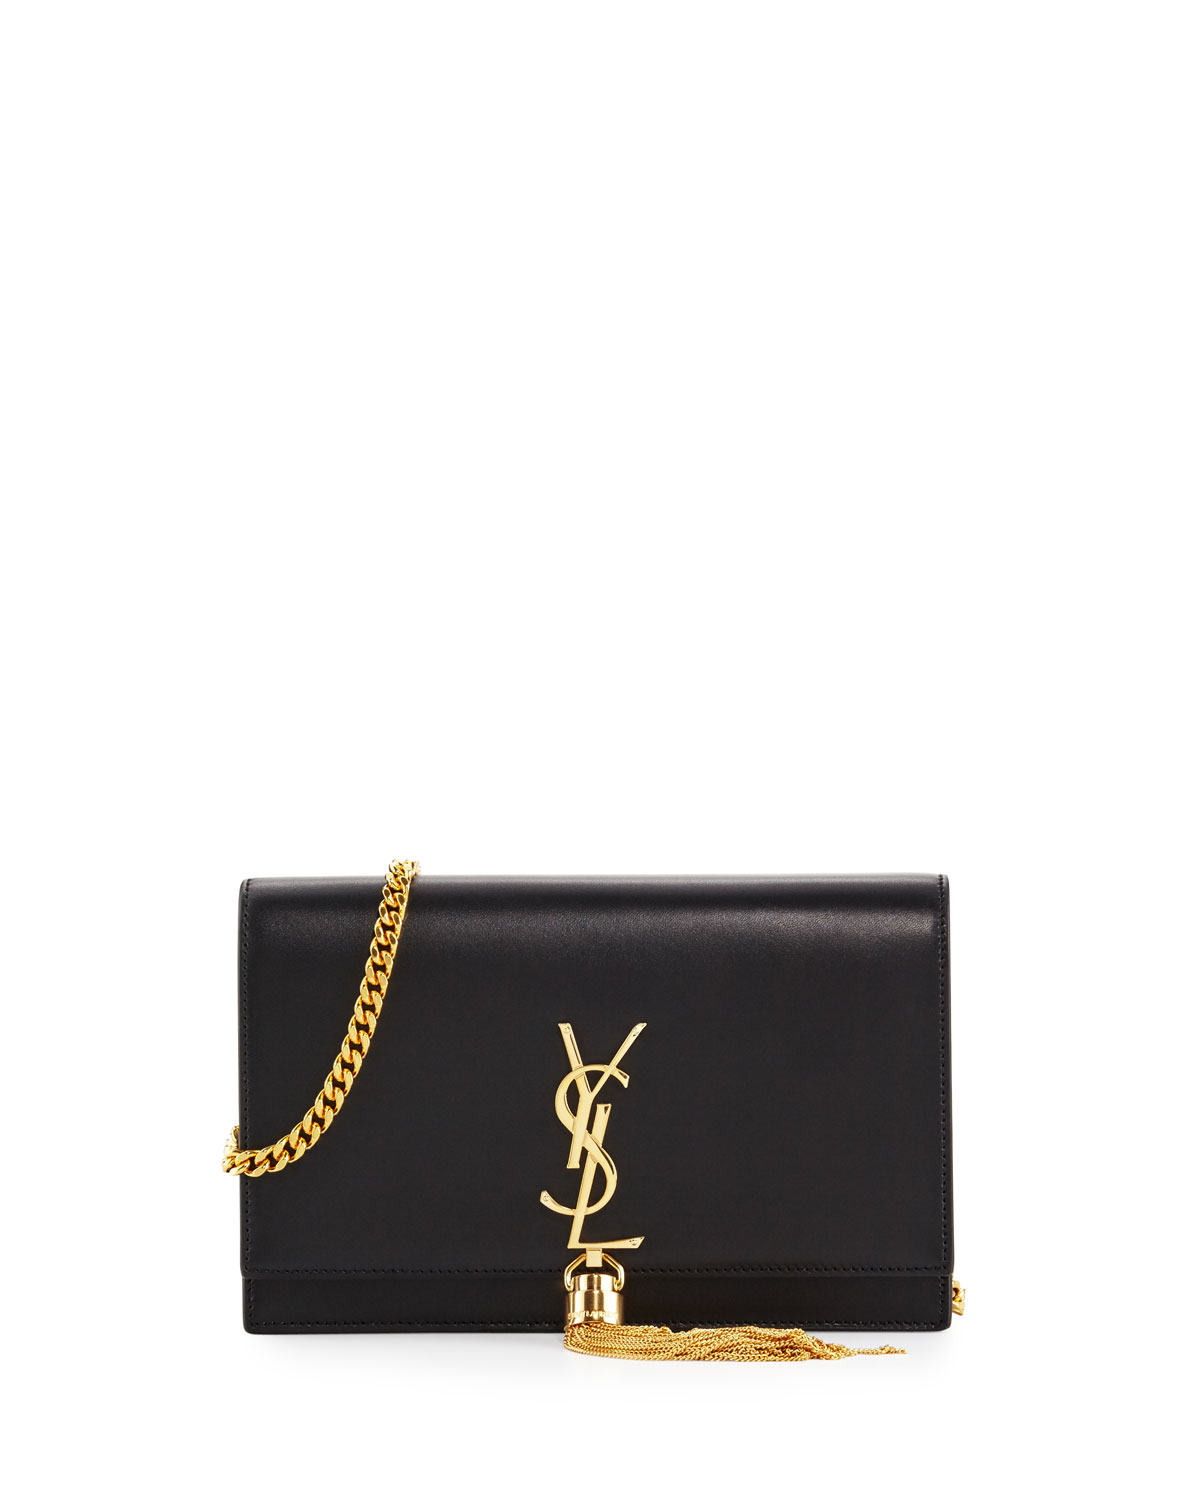 e485302e2efc Saint Laurent Kate Monogram YSL Tassel Chain Wallet